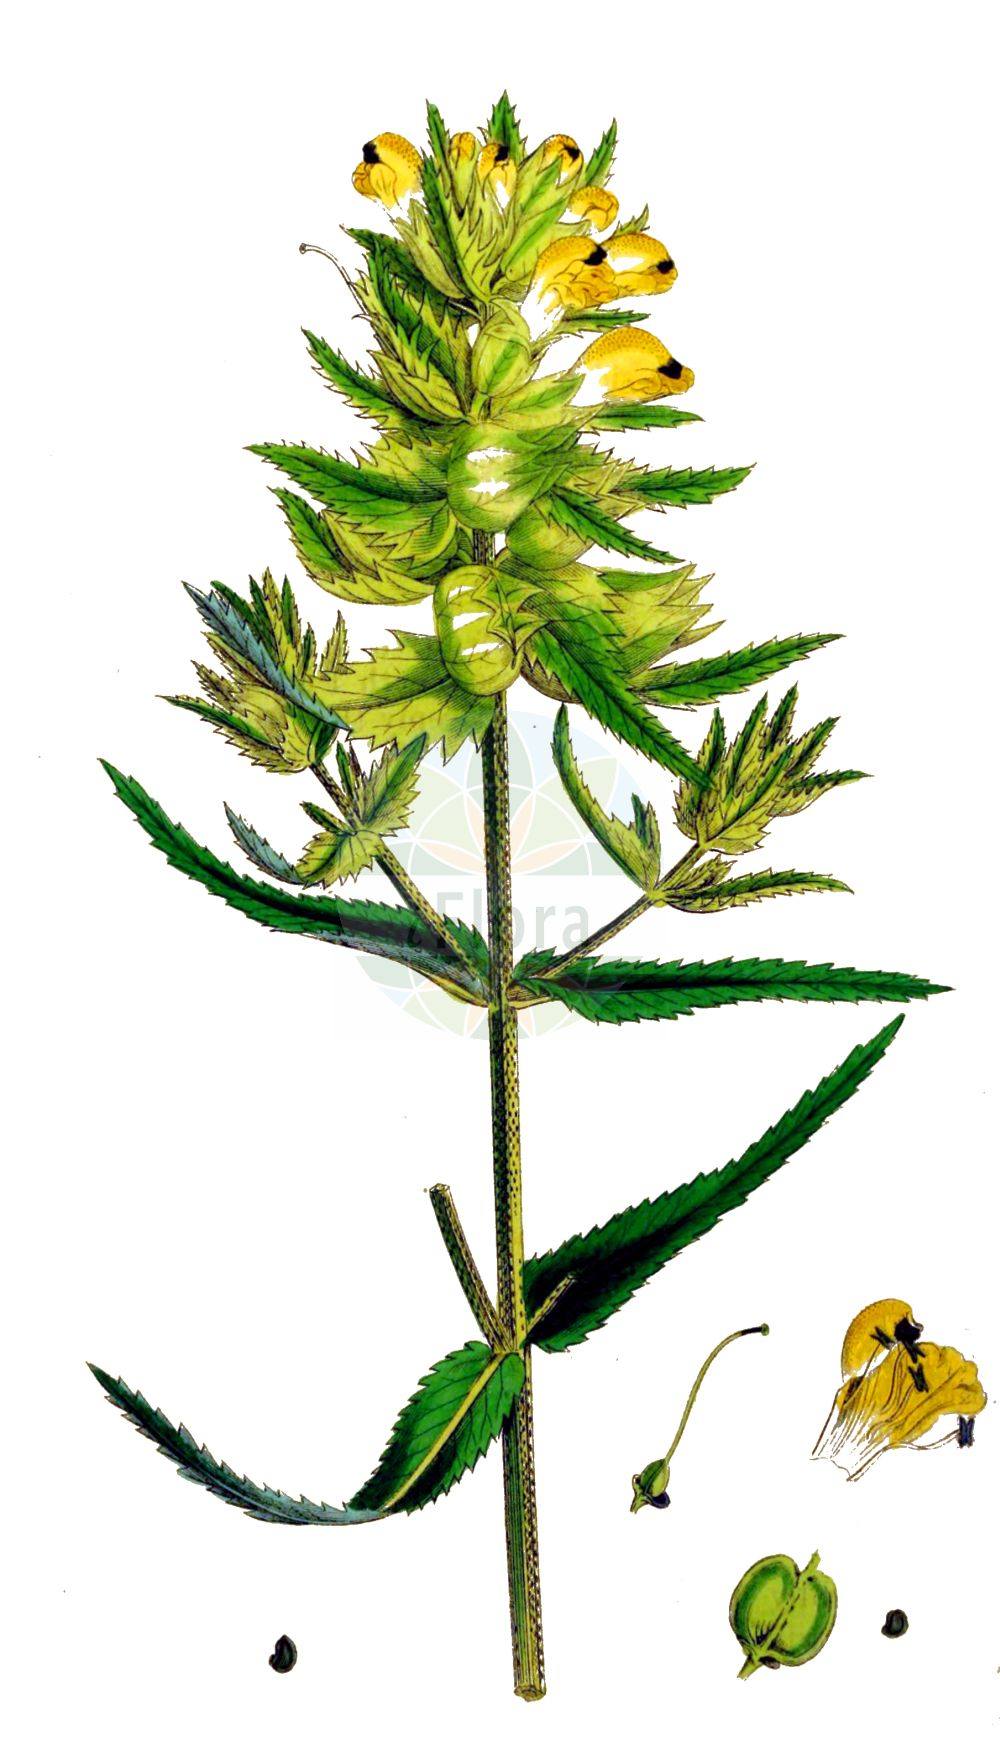 Historische Abbildung von Rhinanthus angustifolius (Acker-Klappertopf - Late-flowering Yellow Rattle). Das Bild zeigt Blatt, Bluete, Frucht und Same. ---- Historical Drawing of Rhinanthus angustifolius (Acker-Klappertopf - Late-flowering Yellow Rattle).The image is showing leaf, flower, fruit and seed.(Rhinanthus angustifolius,Acker-Klappertopf,Late-flowering Yellow Rattle,Alectorolophus angustifolius,Alectorolophus glaber,Alectorolophus major,Alectorolophus major Rchb. subsp.,Alectorolophus serotinus,Rhinanthus angustifolius,Rhinanthus glaber,Rhinanthus paludosus,Rhinanthus serotinus,Rhinanthus serotinus subsp. polycladus,Acker-Klappertopf,Grosser Klappertopf,Late-flowering Yellow Rattle,Greater Yellow Rattle,Narrow-leaved Yellow Rattle,Southern Yellow Rattle,Rhinanthus,Klappertopf,Yellow Rattle,Orobanchaceae,Sommerwurzgewaechse,Broomrape family,Blatt,Bluete,Frucht,Same,leaf,flower,fruit,seed,Sowerby (1790-1813))